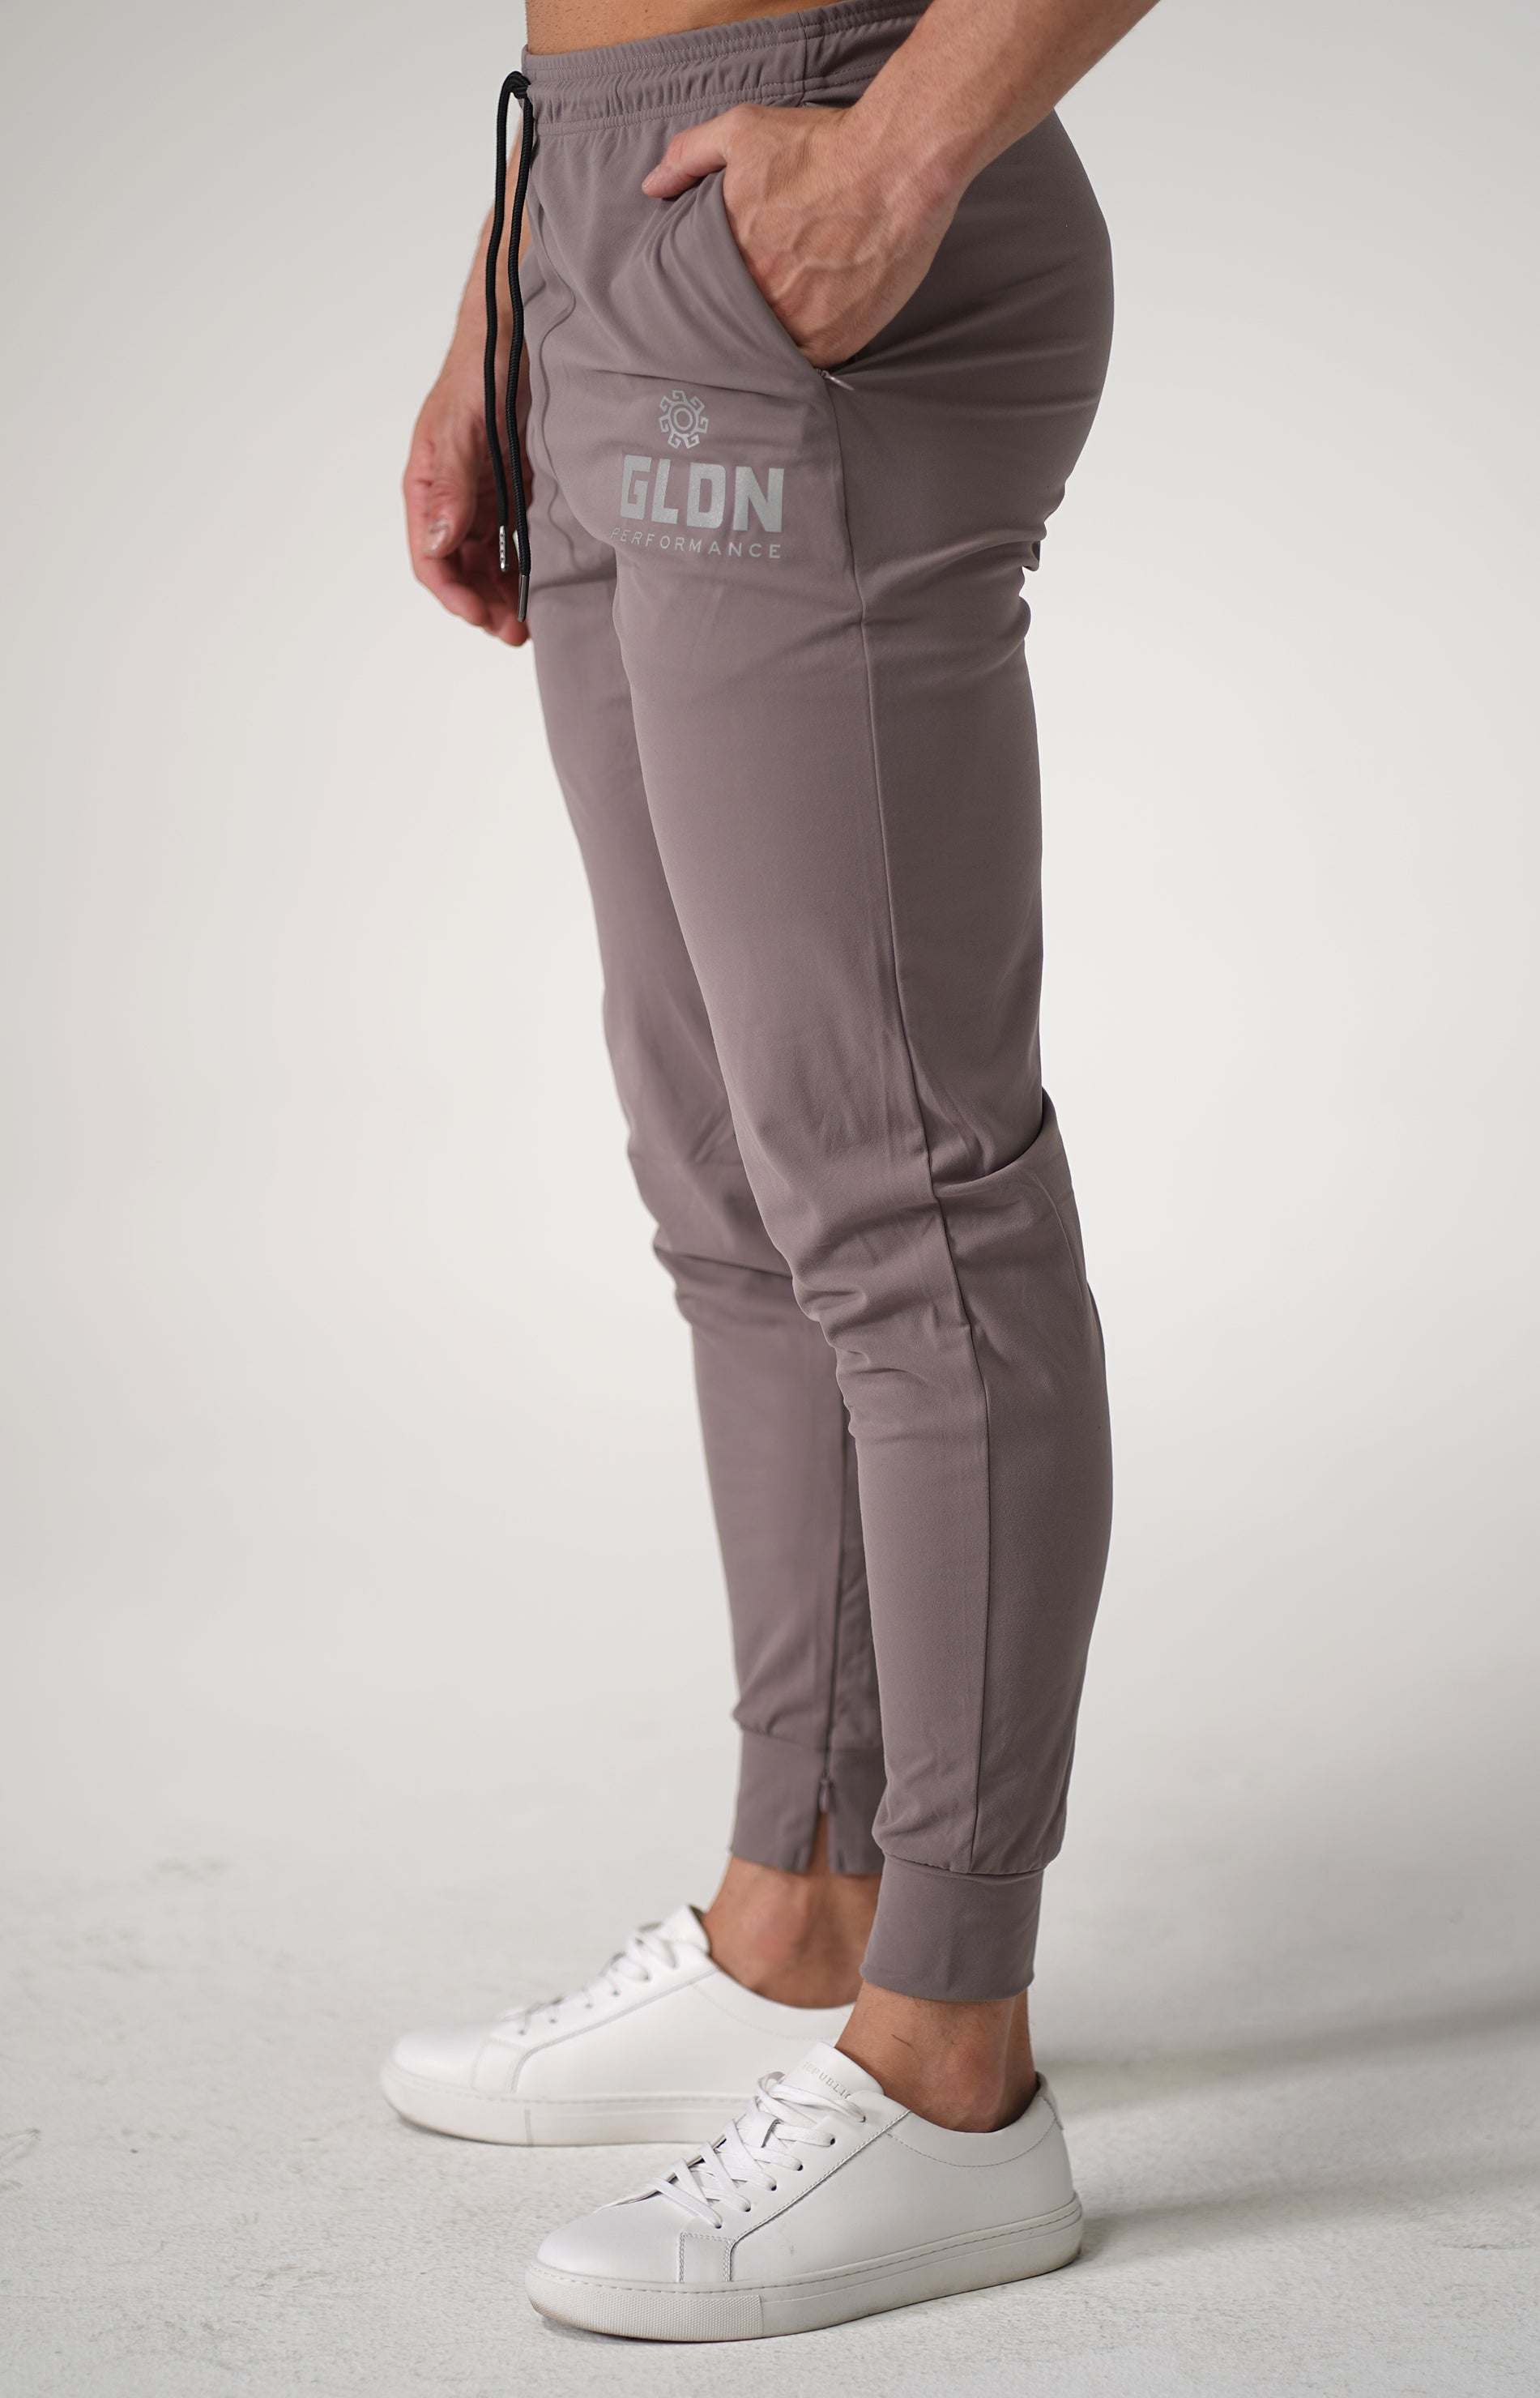 Khaki GLDN High Performance Track Pants